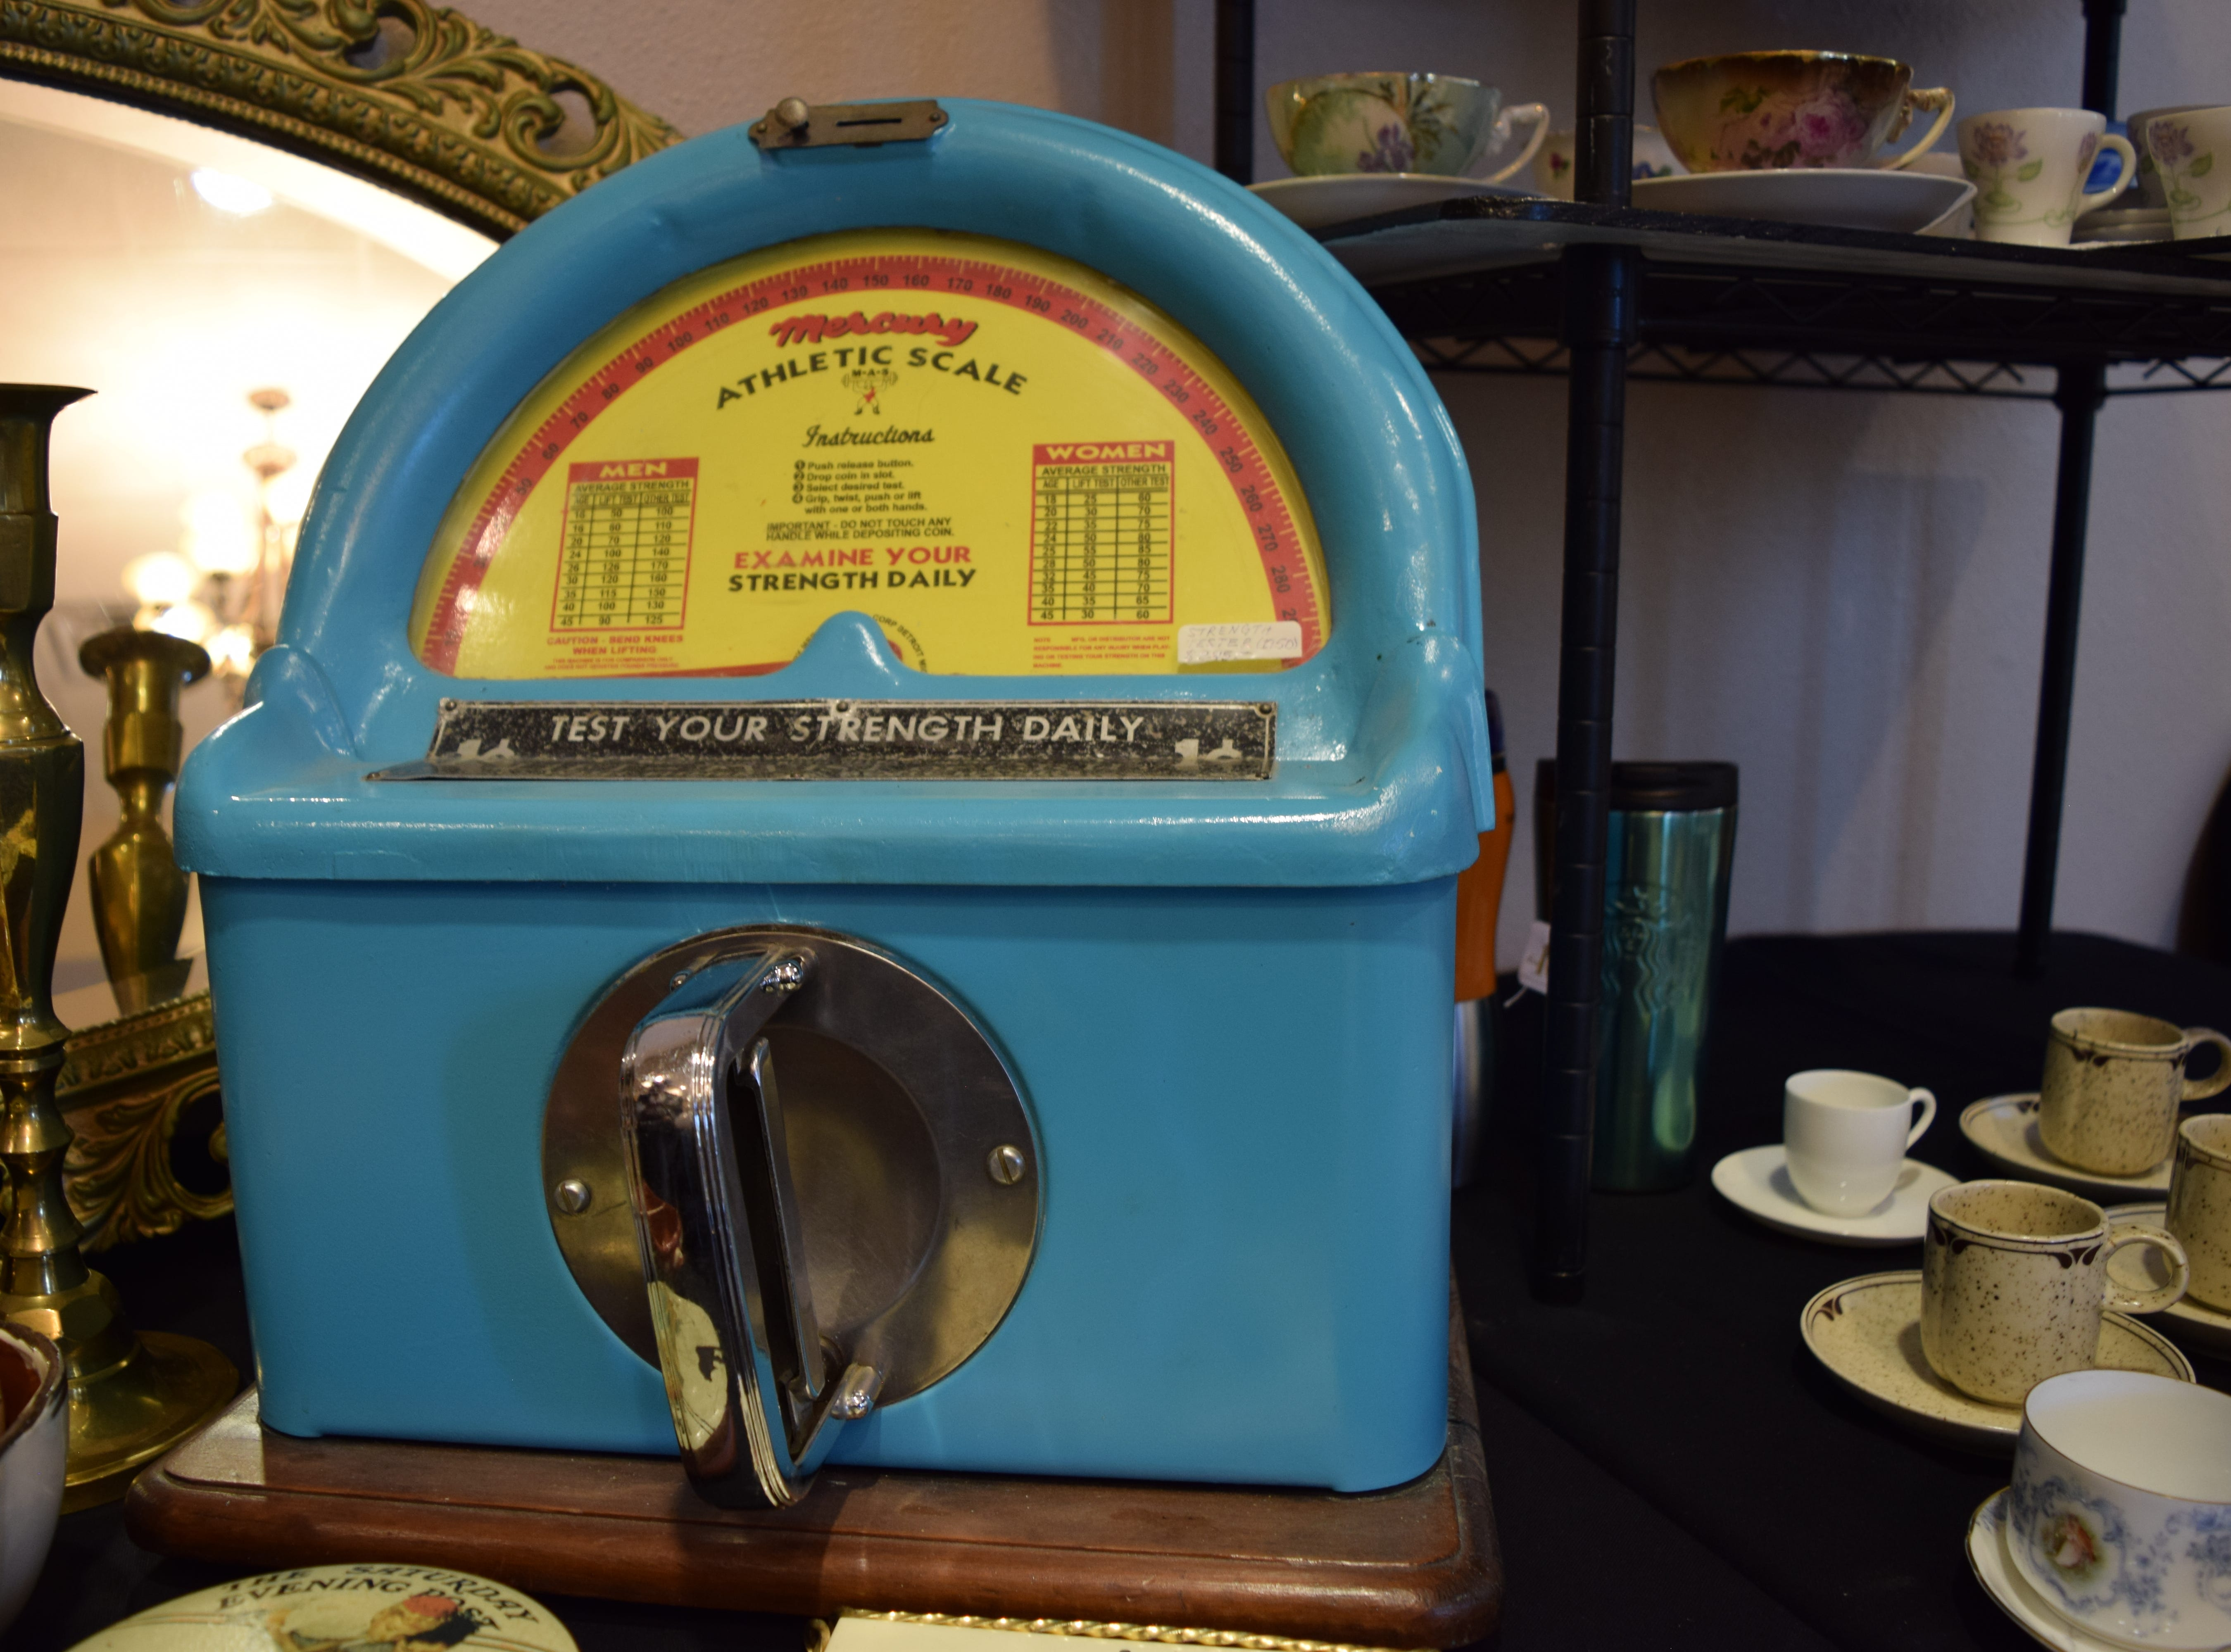 Often found in arcades across America in the 1950s were these coin-operated strength testers. This one, the Mercury Athletic Scale, was made by Great Lakes System starting in 1951. The machines needed only a penny to get started and then users could either lift, twist or grip the center handle to test their strength — Antiques Treasures Show at the Farm and Ranch Heritage Museum, Jan. 26, 2019.